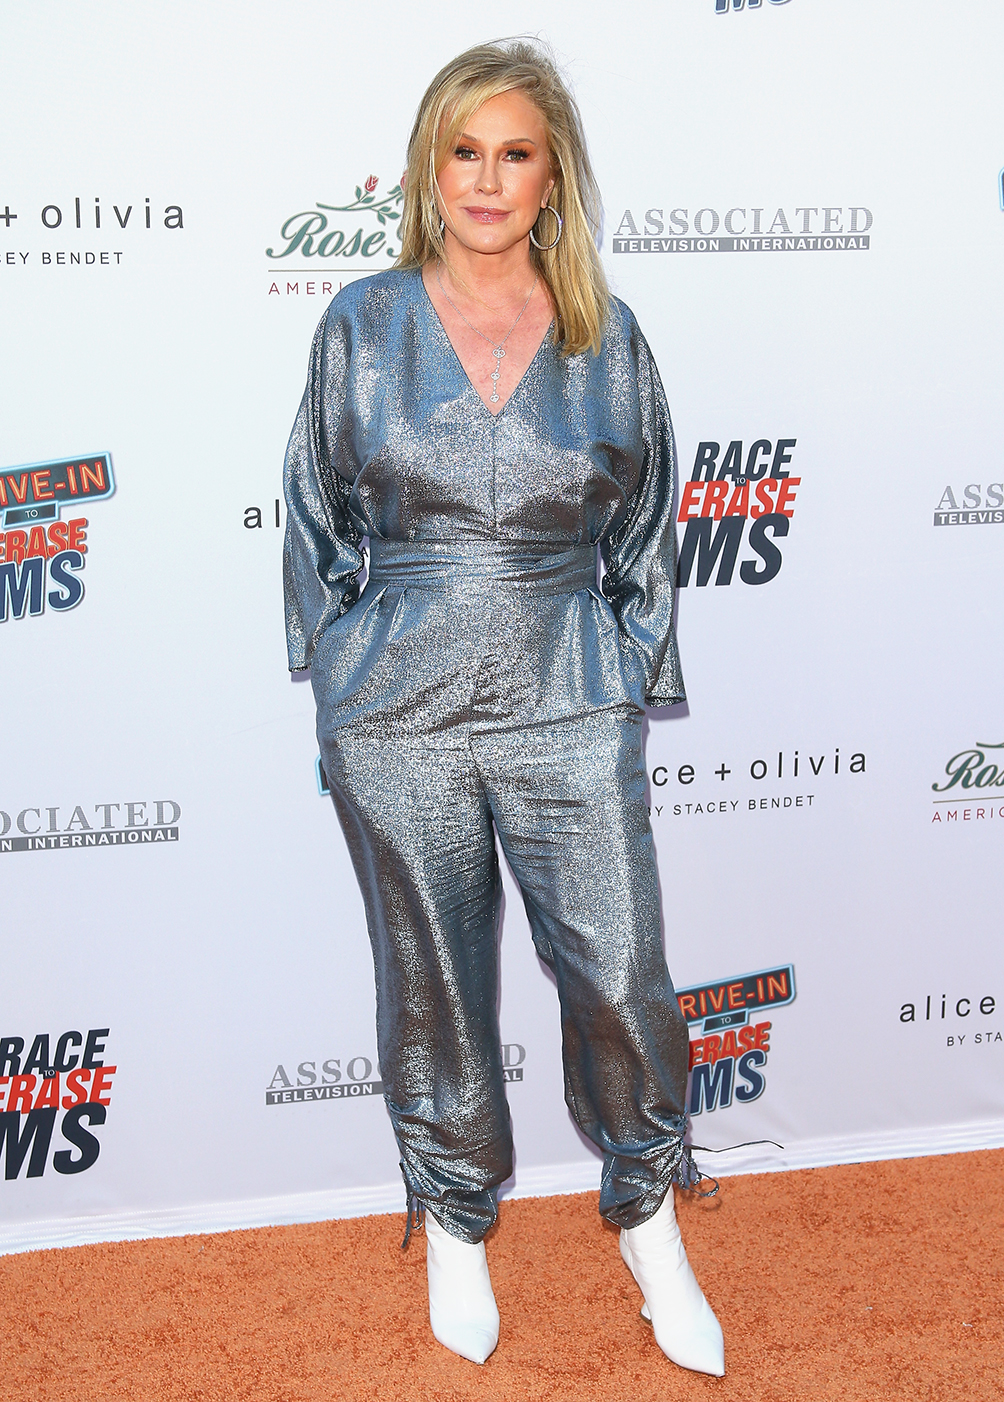 Kathy Hilton attends the 28th Annual Race To Erase MS: Drive-In Gala at Rose Bowl on June 04, 2021 in Pasadena, California.